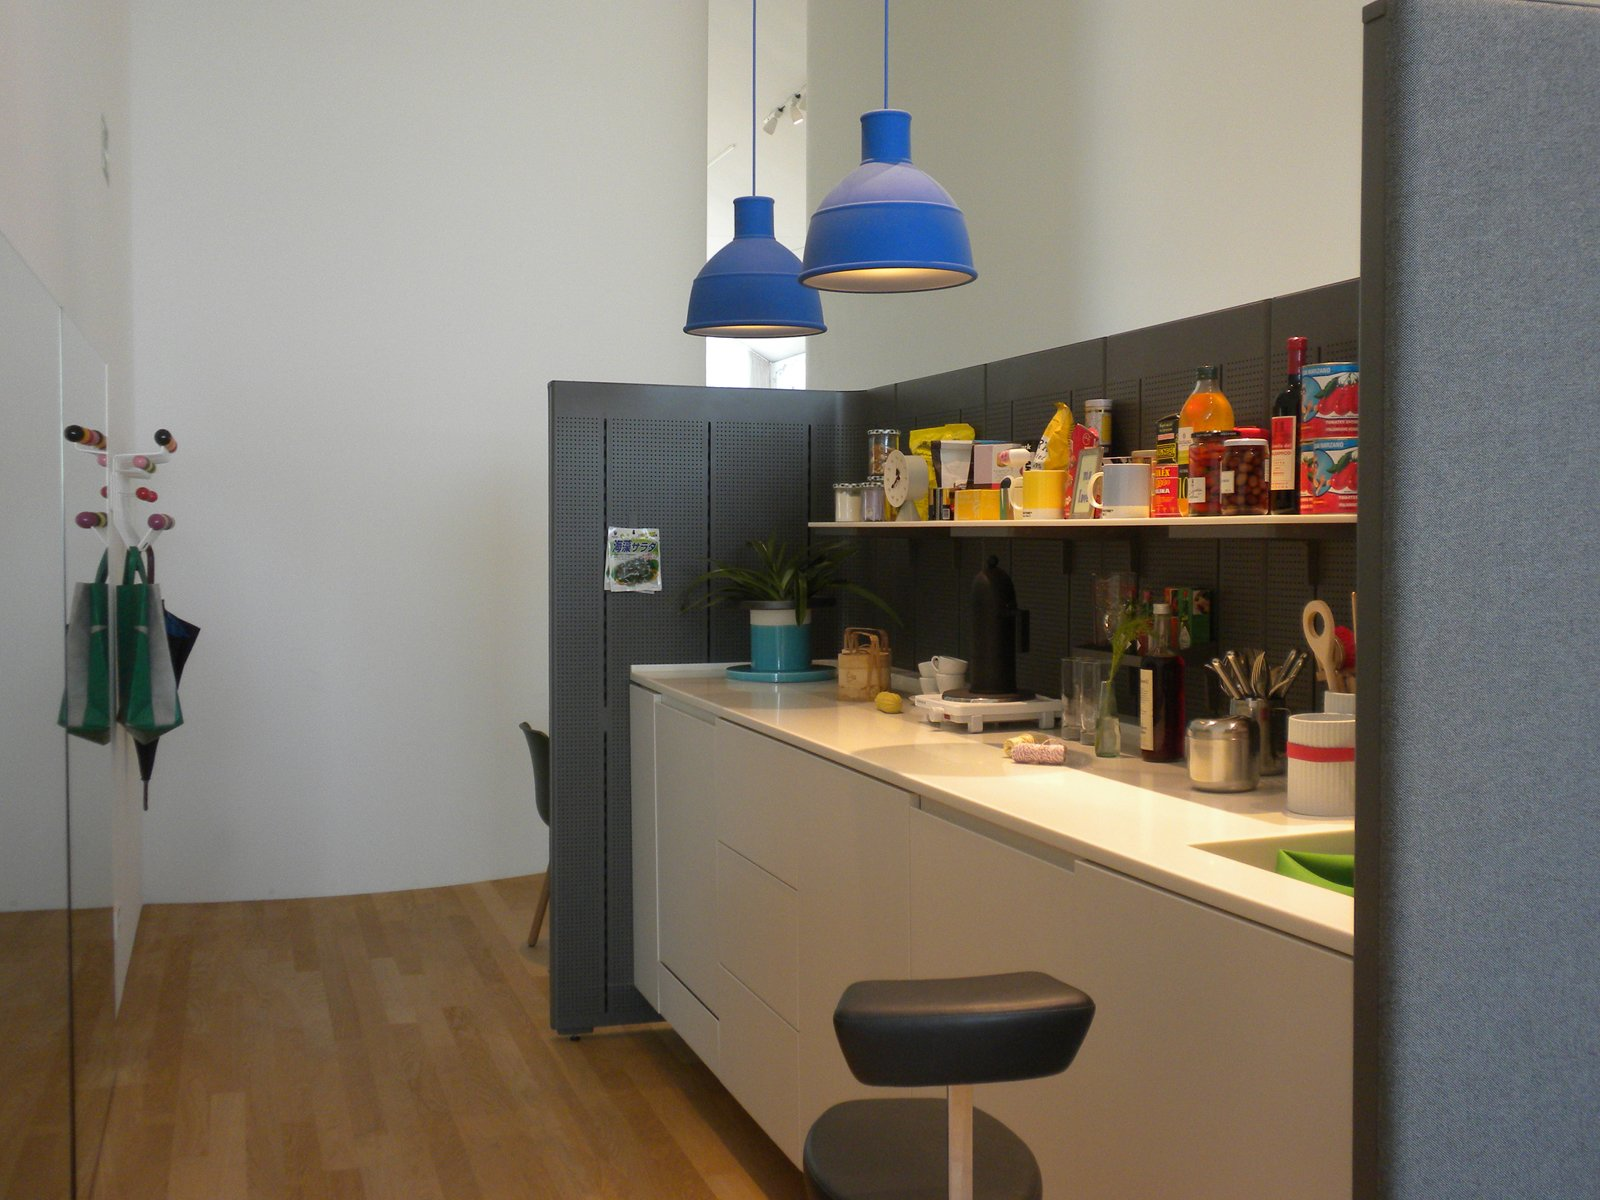 This vignette shows the Communal Cell, a prototype by Ronan and Erwan Bouroullec designed in 2010 as an office kitchen space.  Inside the VitraHaus by Miyoko Ohtake